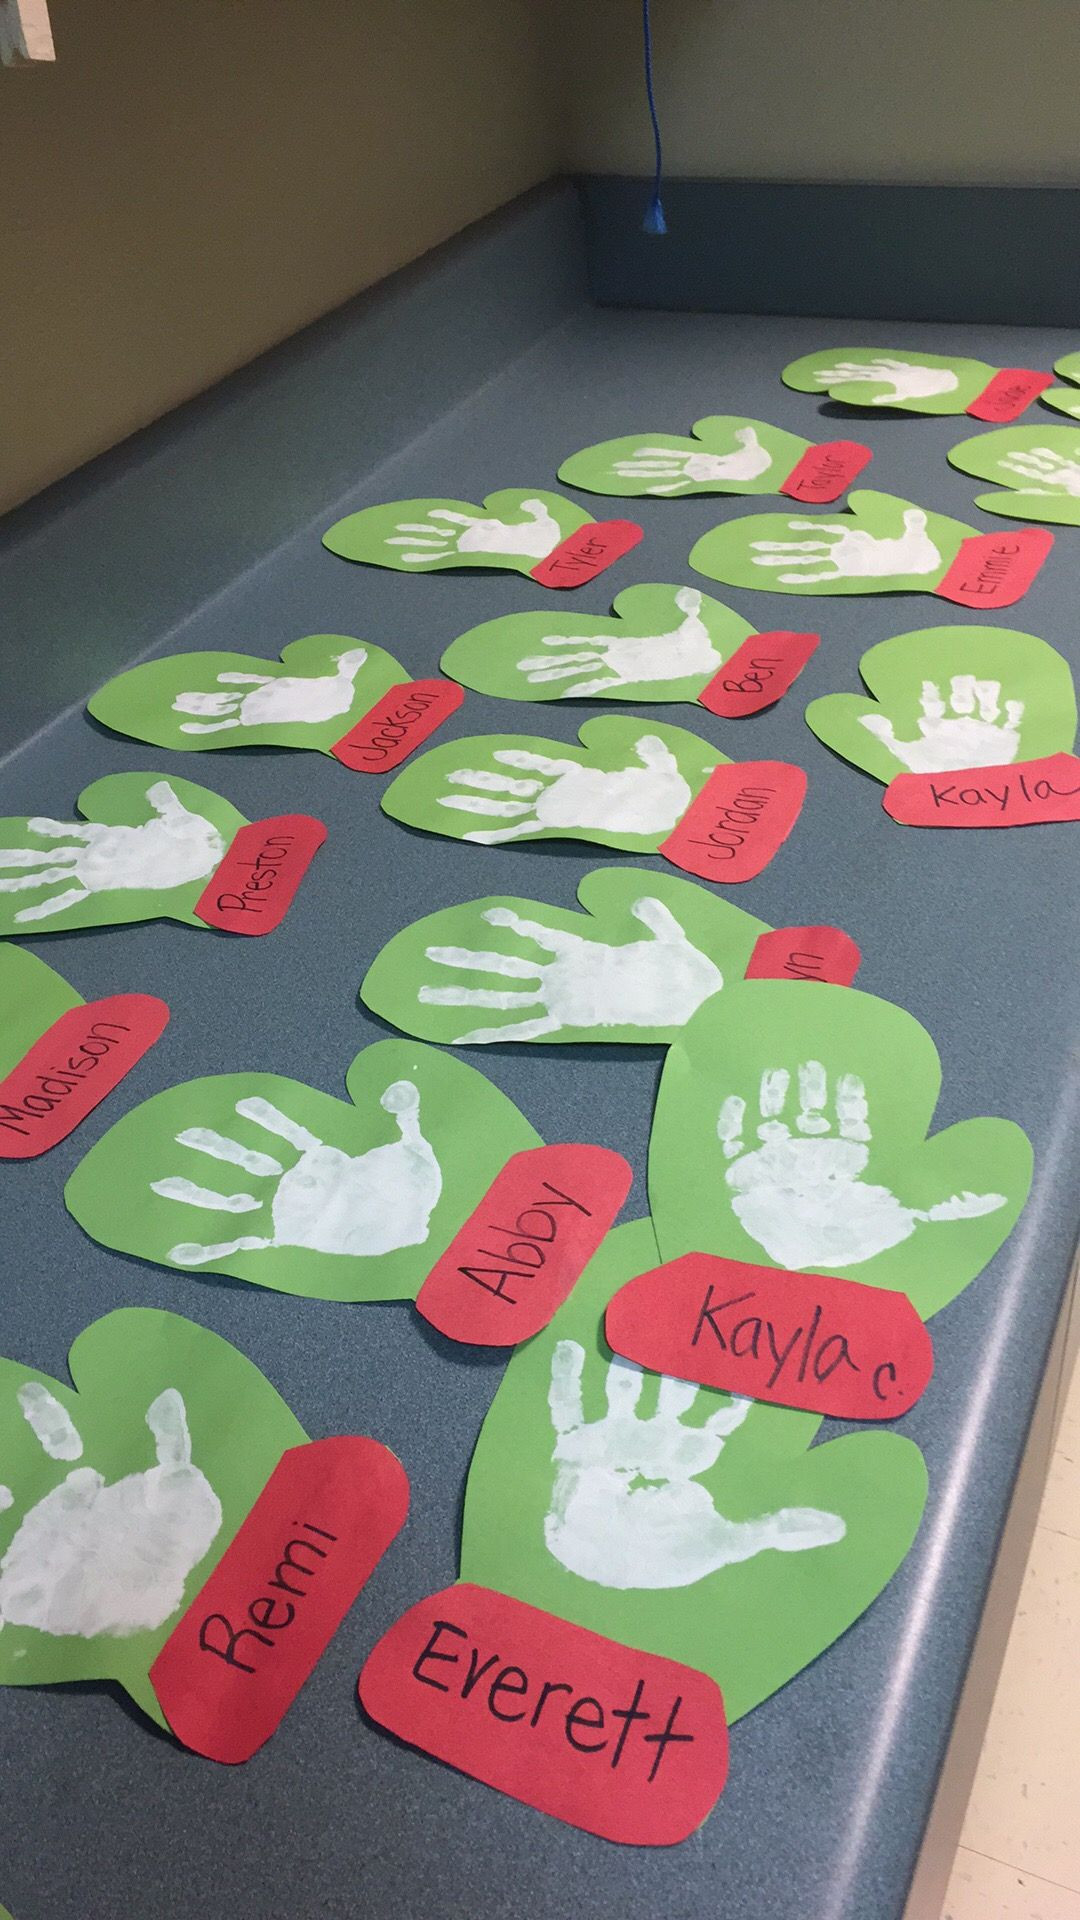 Christmas Craft Ideas For Preschoolers  23 Cute and Fun Handprint and Footprint Crafts for Kids